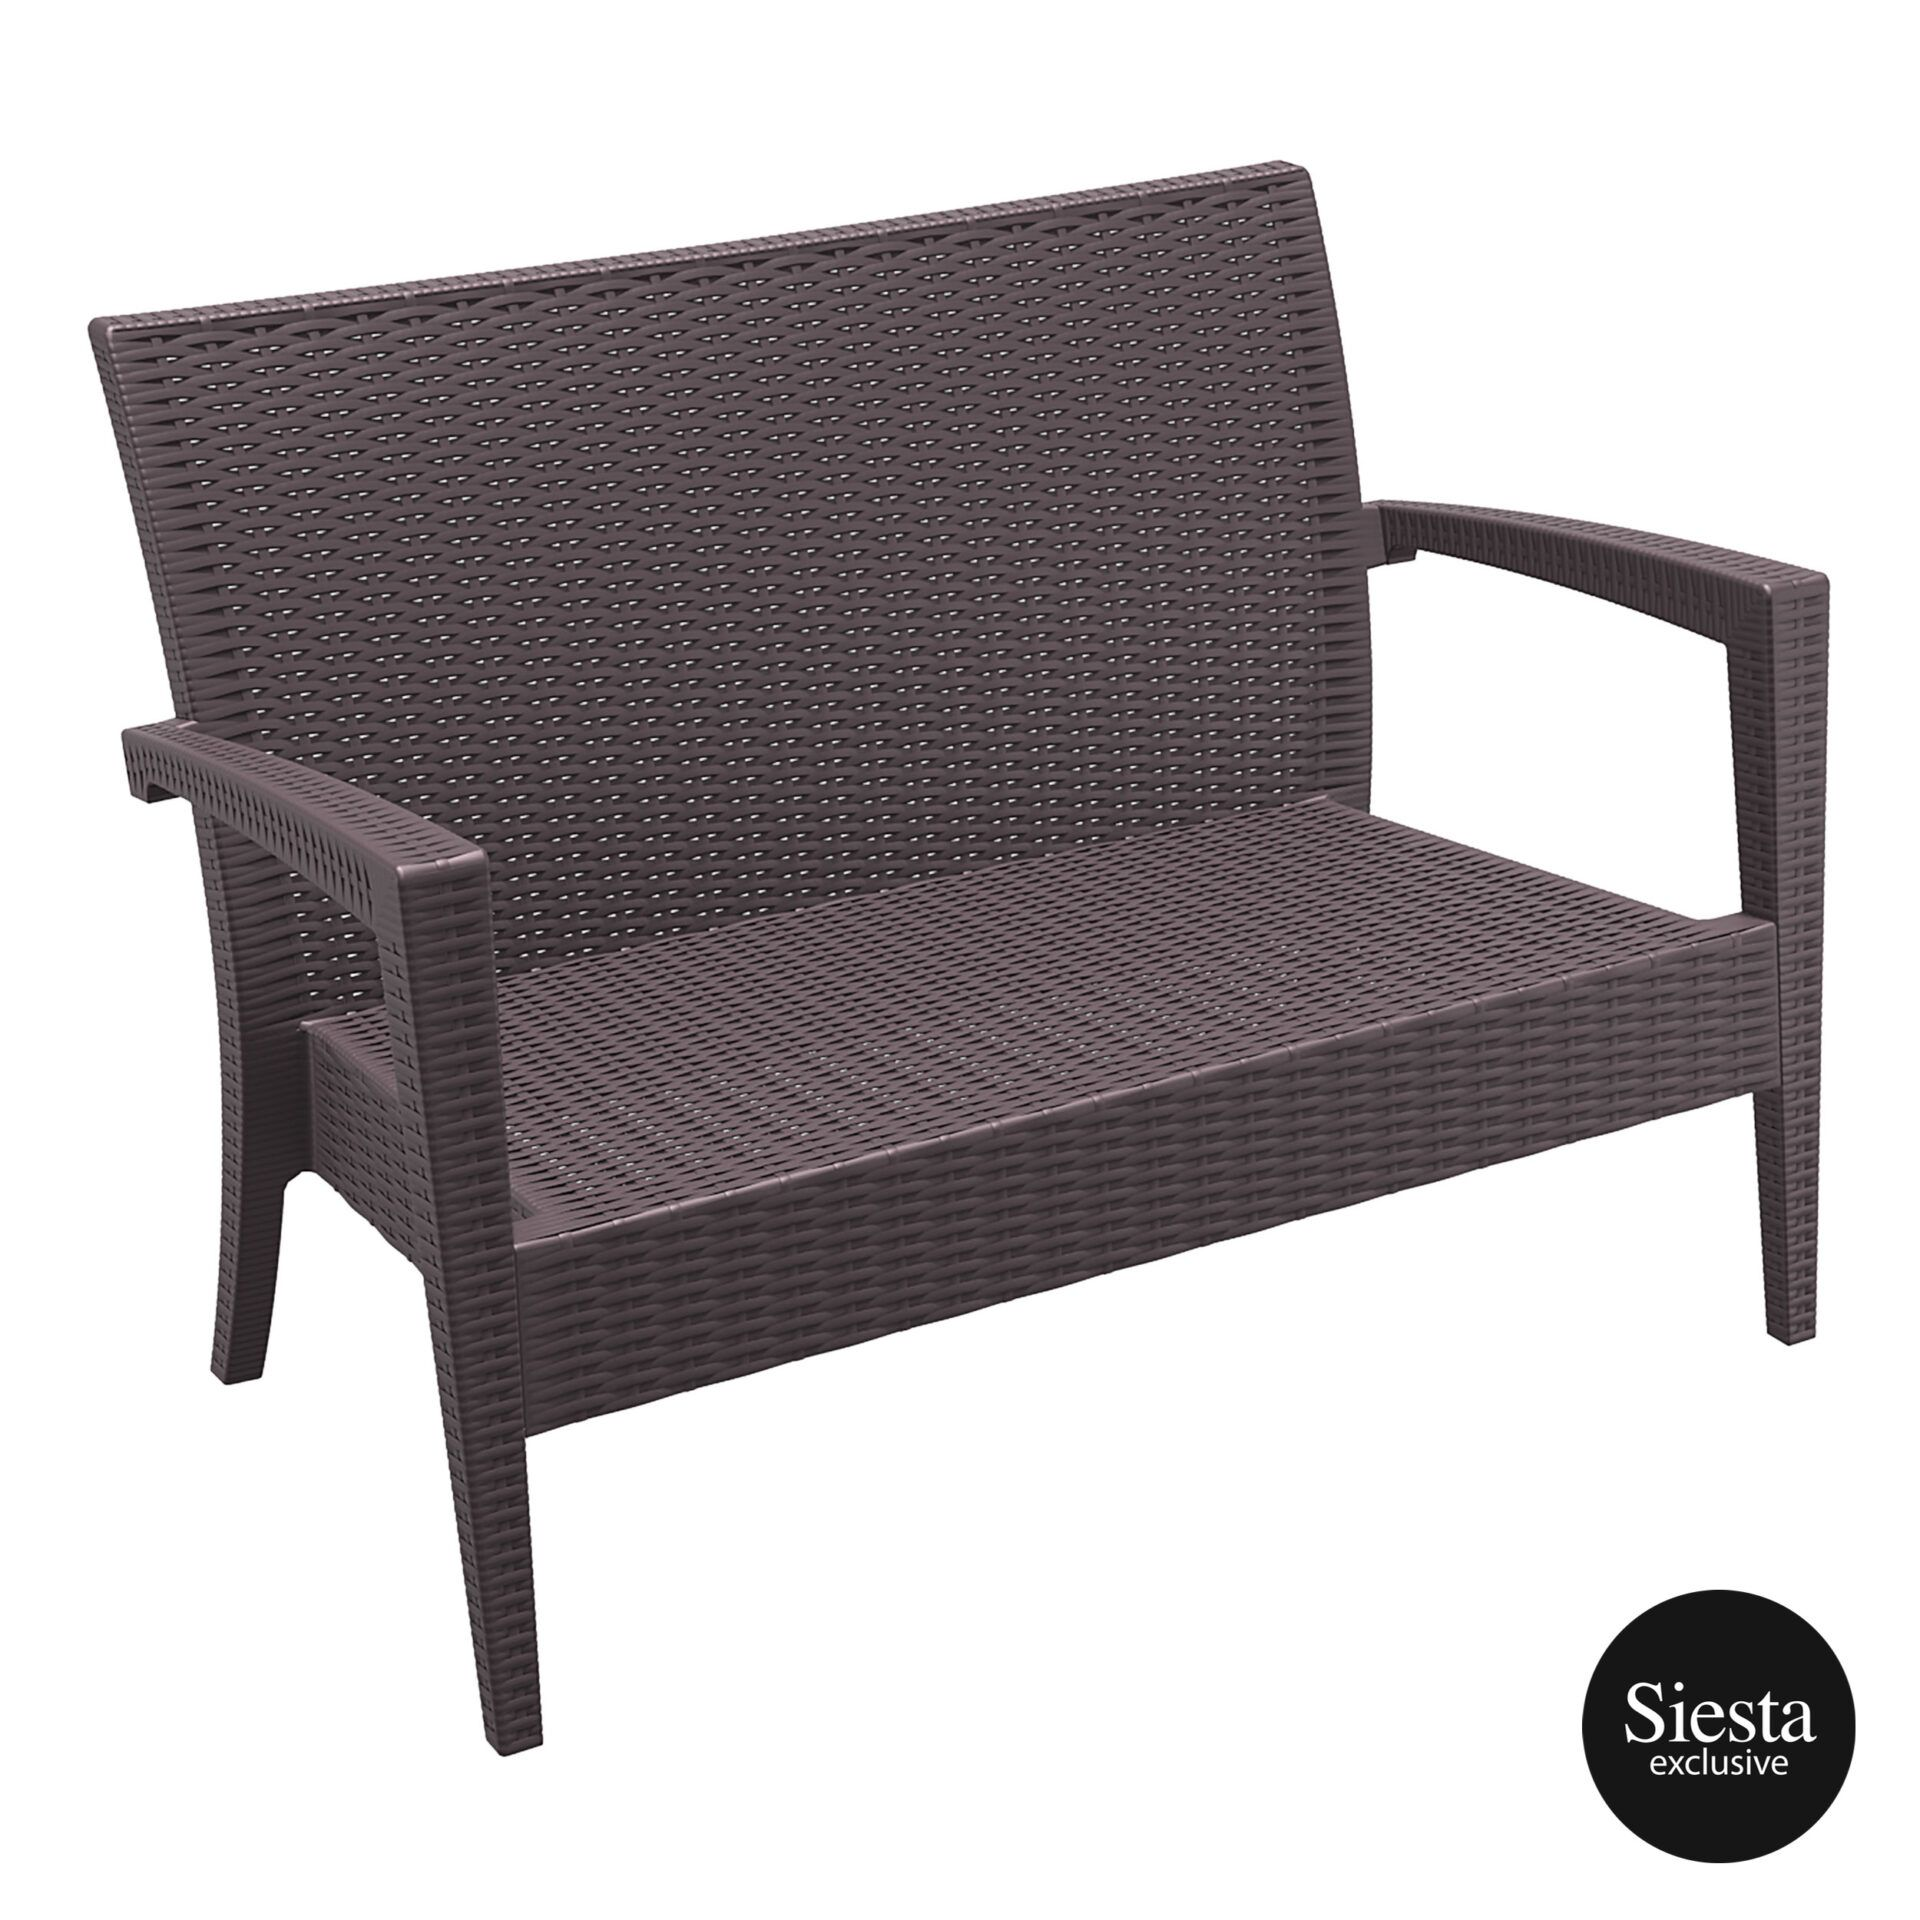 Resin Rattan Miami Tequila Lounge sofa brown front side